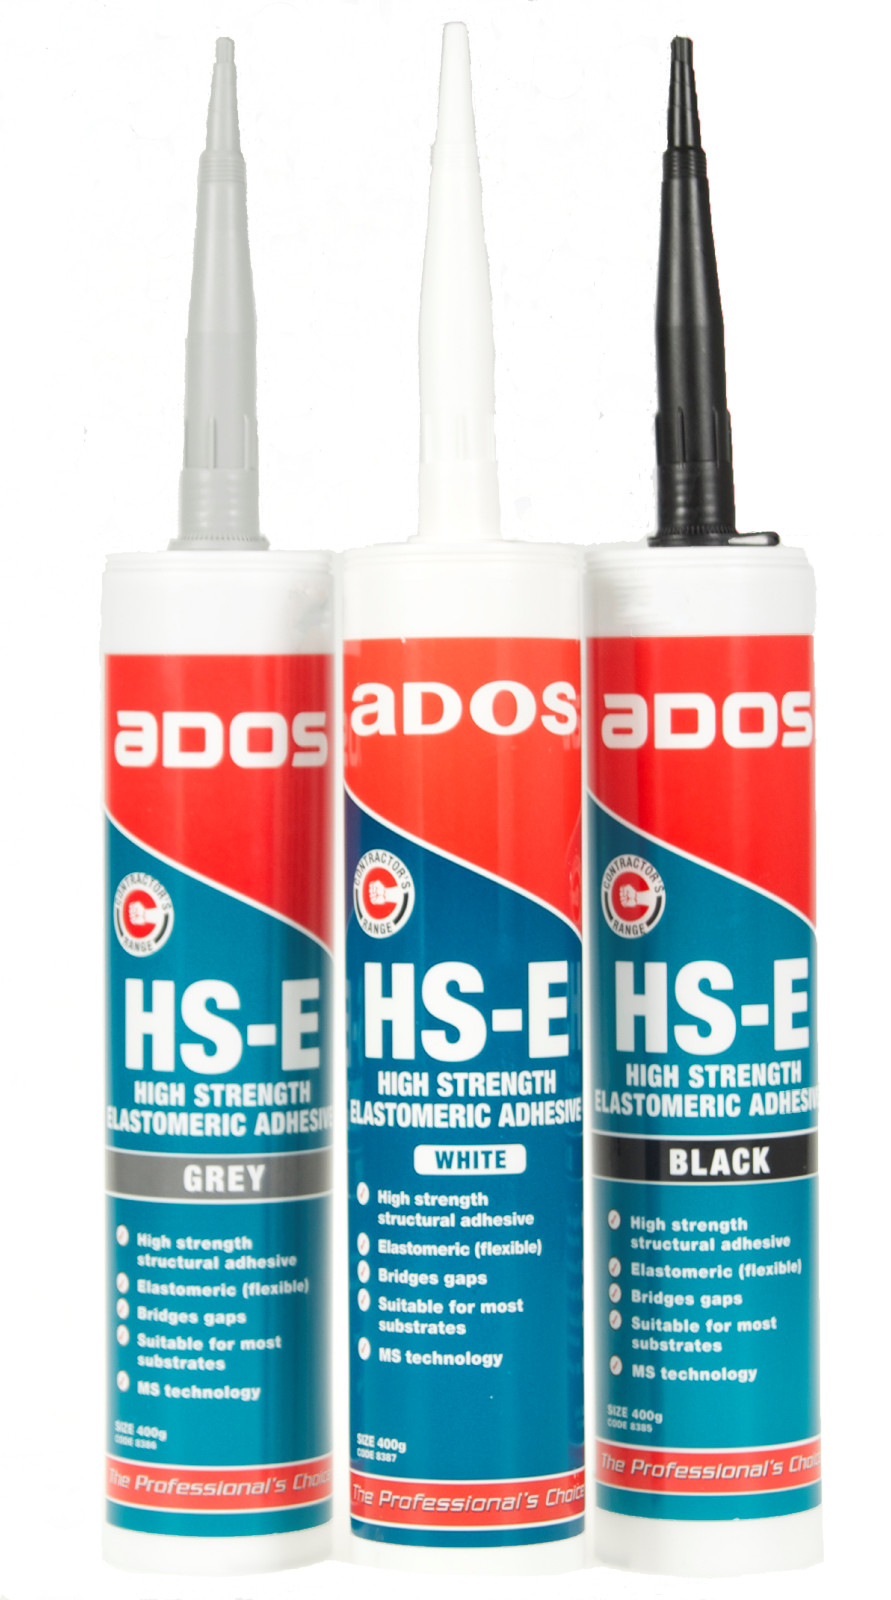 High Strength Elastomeric Flexible Adhesive Sealant | ADOS HS-E